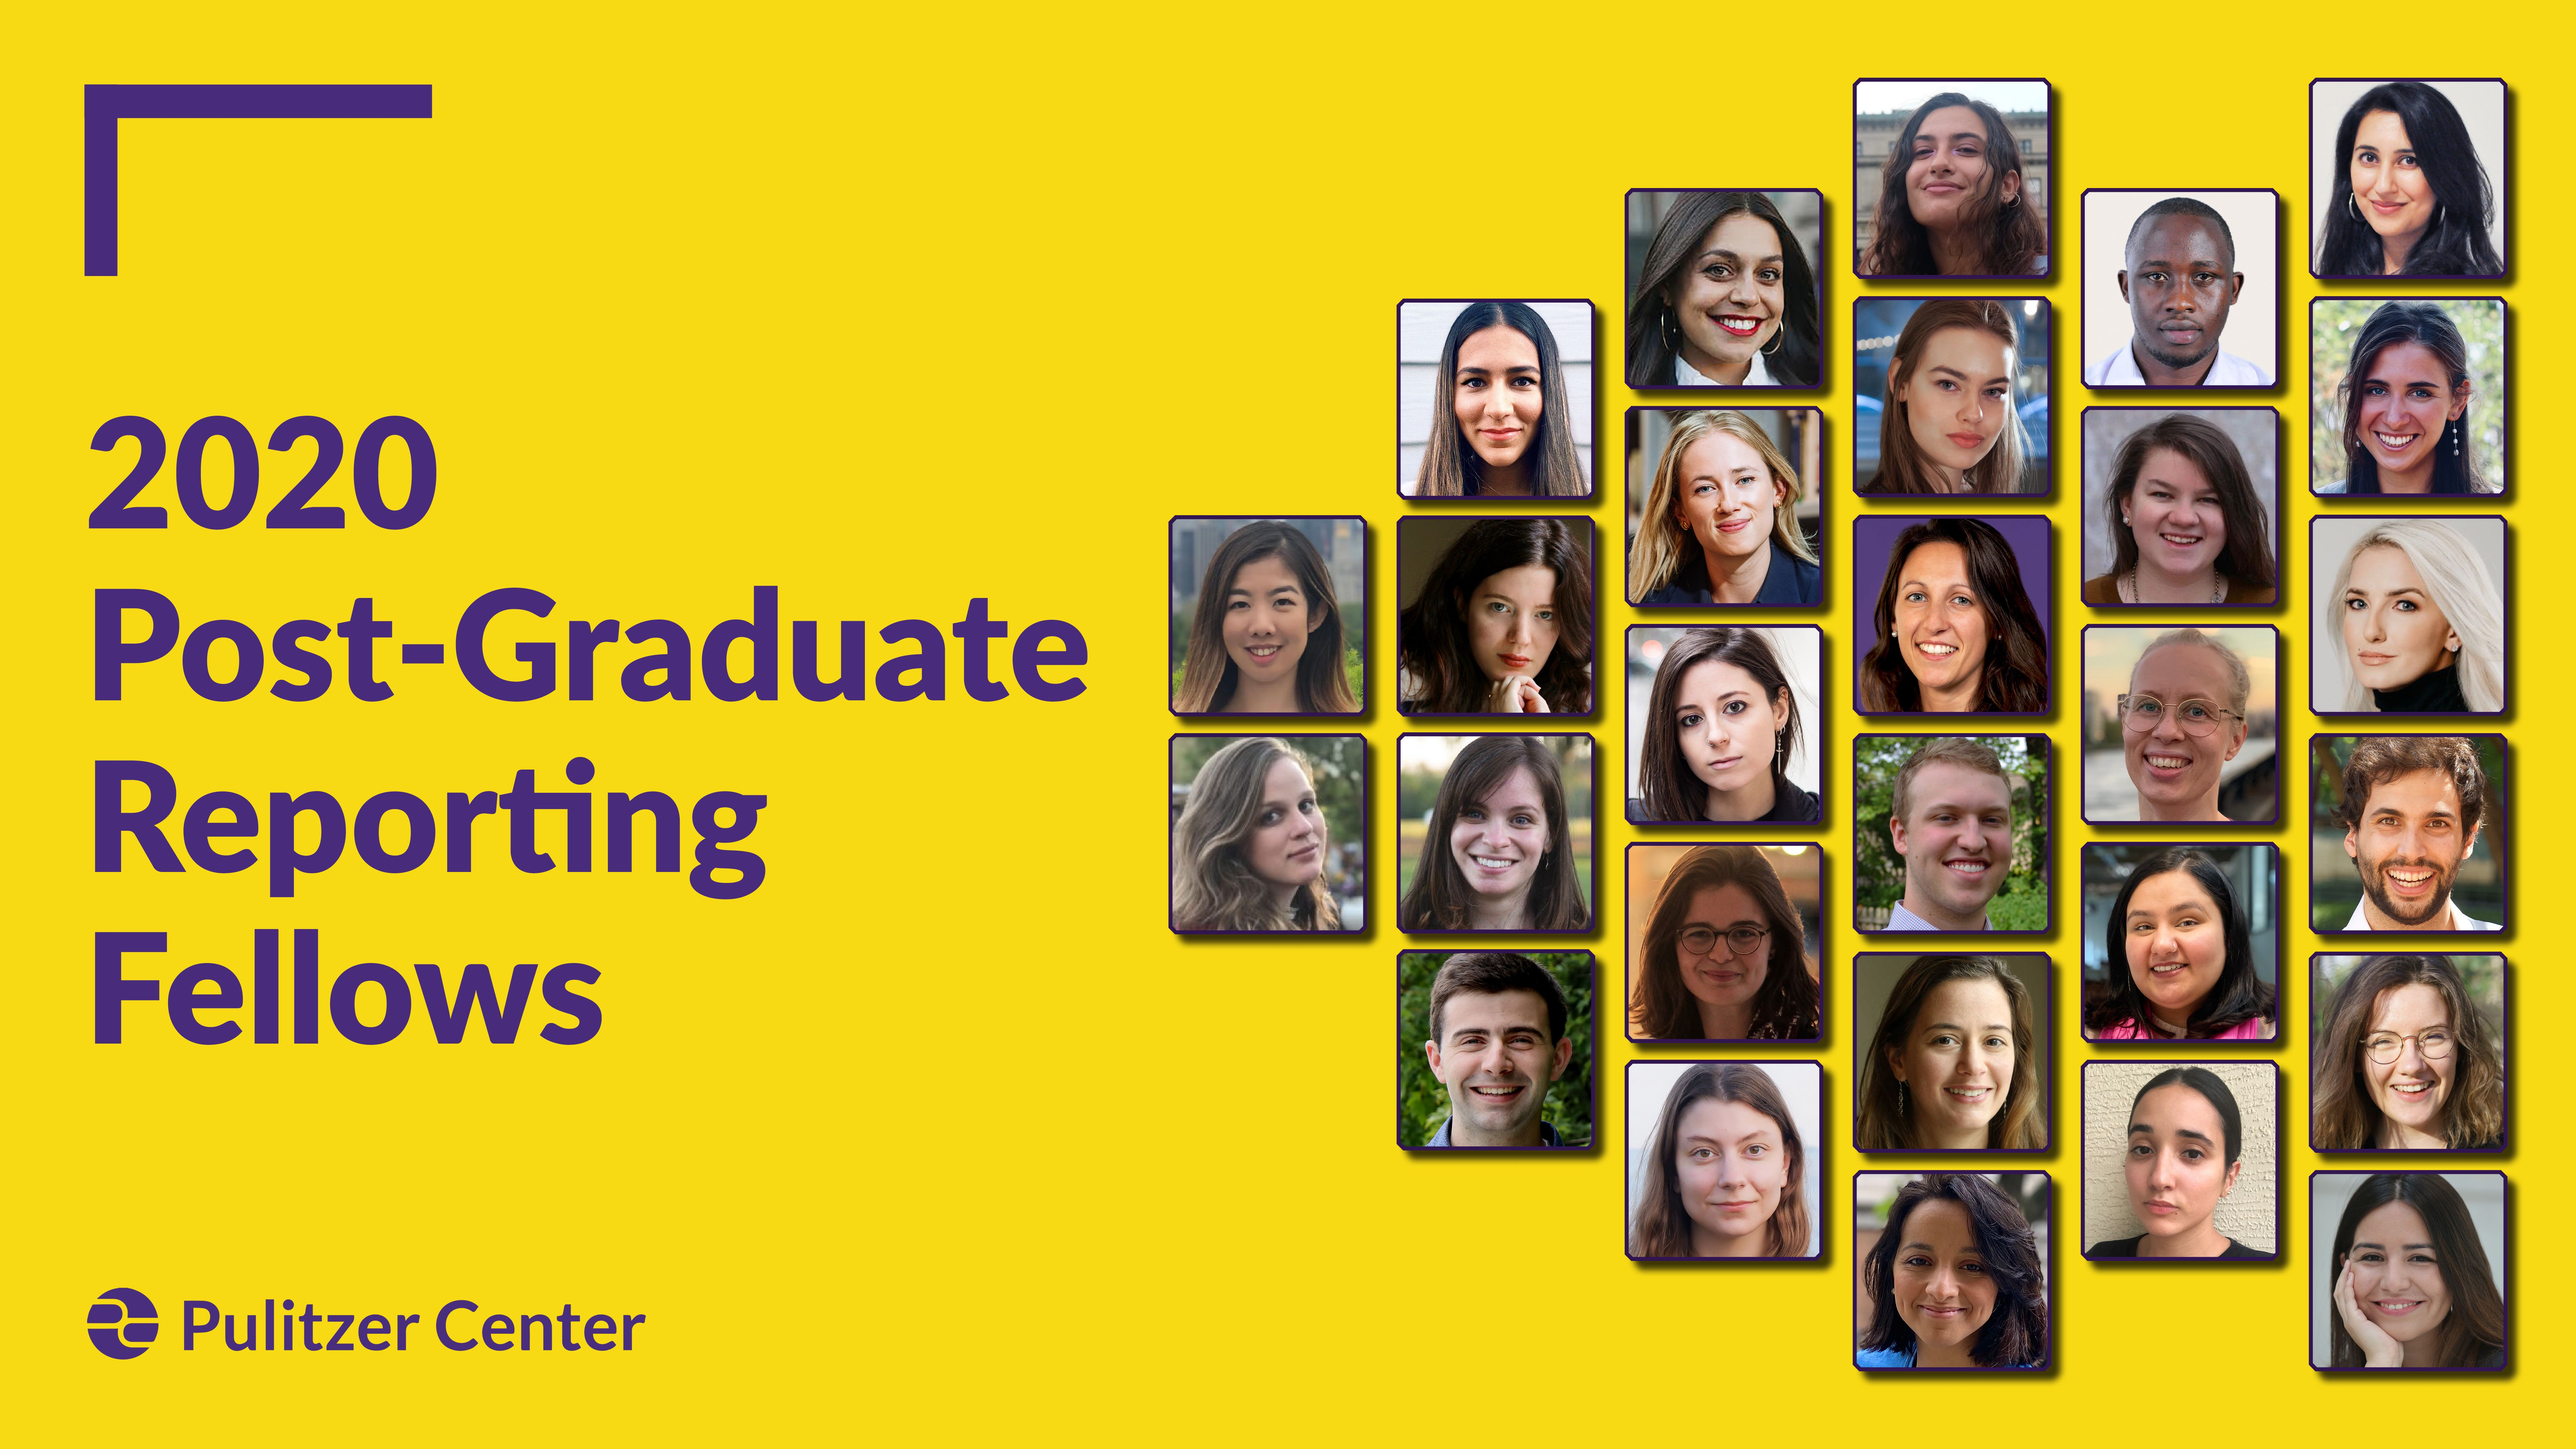 Congratulations to the inaugural 2020 Pulitzer Center Post-Graduate Reporting Fellows. Graphic by Lucy Crelli.